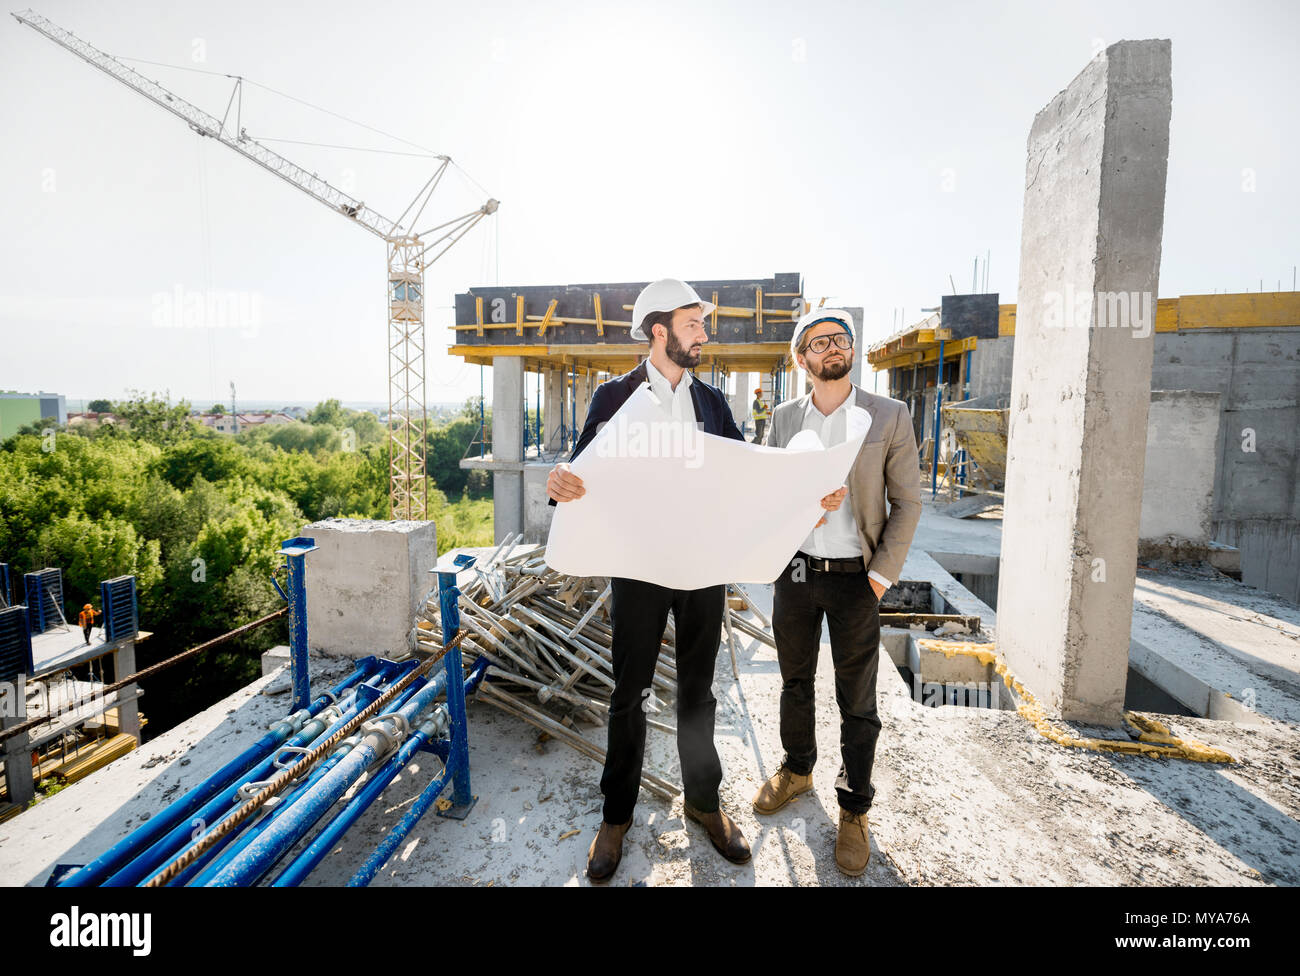 Engineers working on the structure - Stock Image